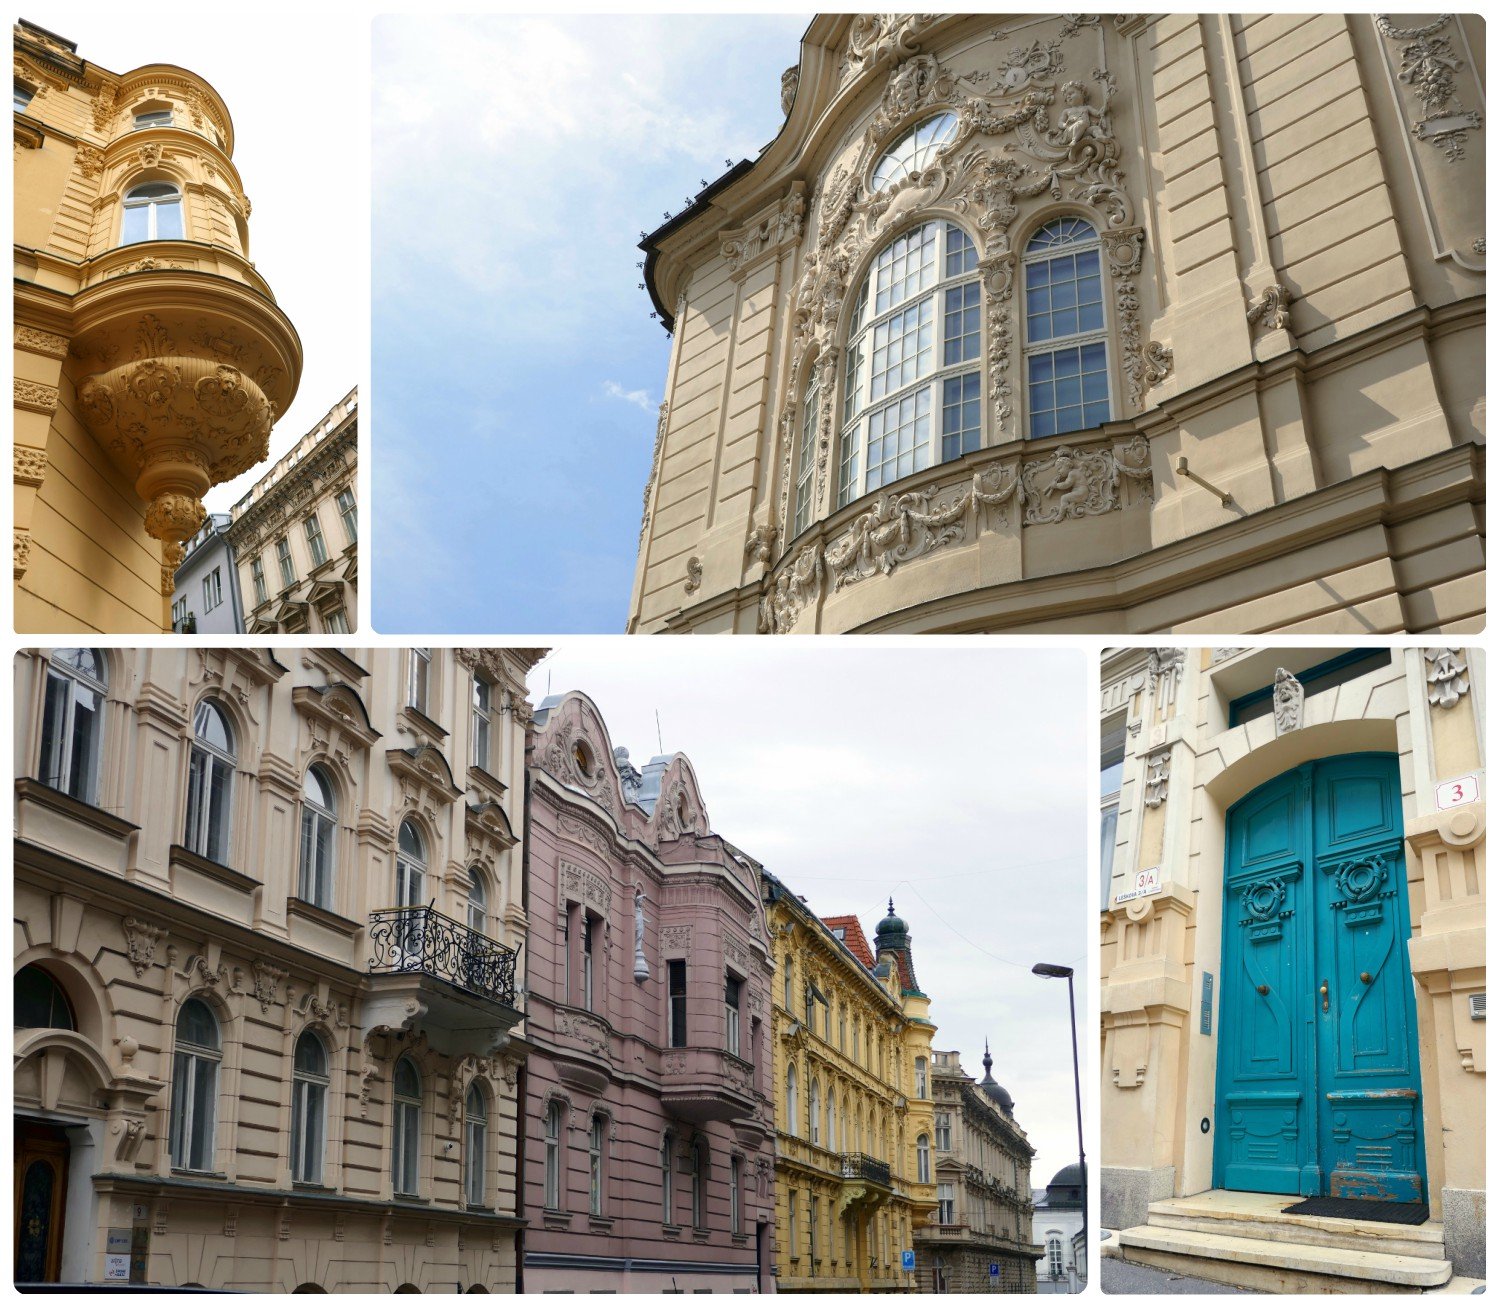 It wont take much exploring of downtown Bratislava to notice the intricate and ornate building fronts. As we made our way around town, we were sure to look up and around us, as we didn't want to miss anything!